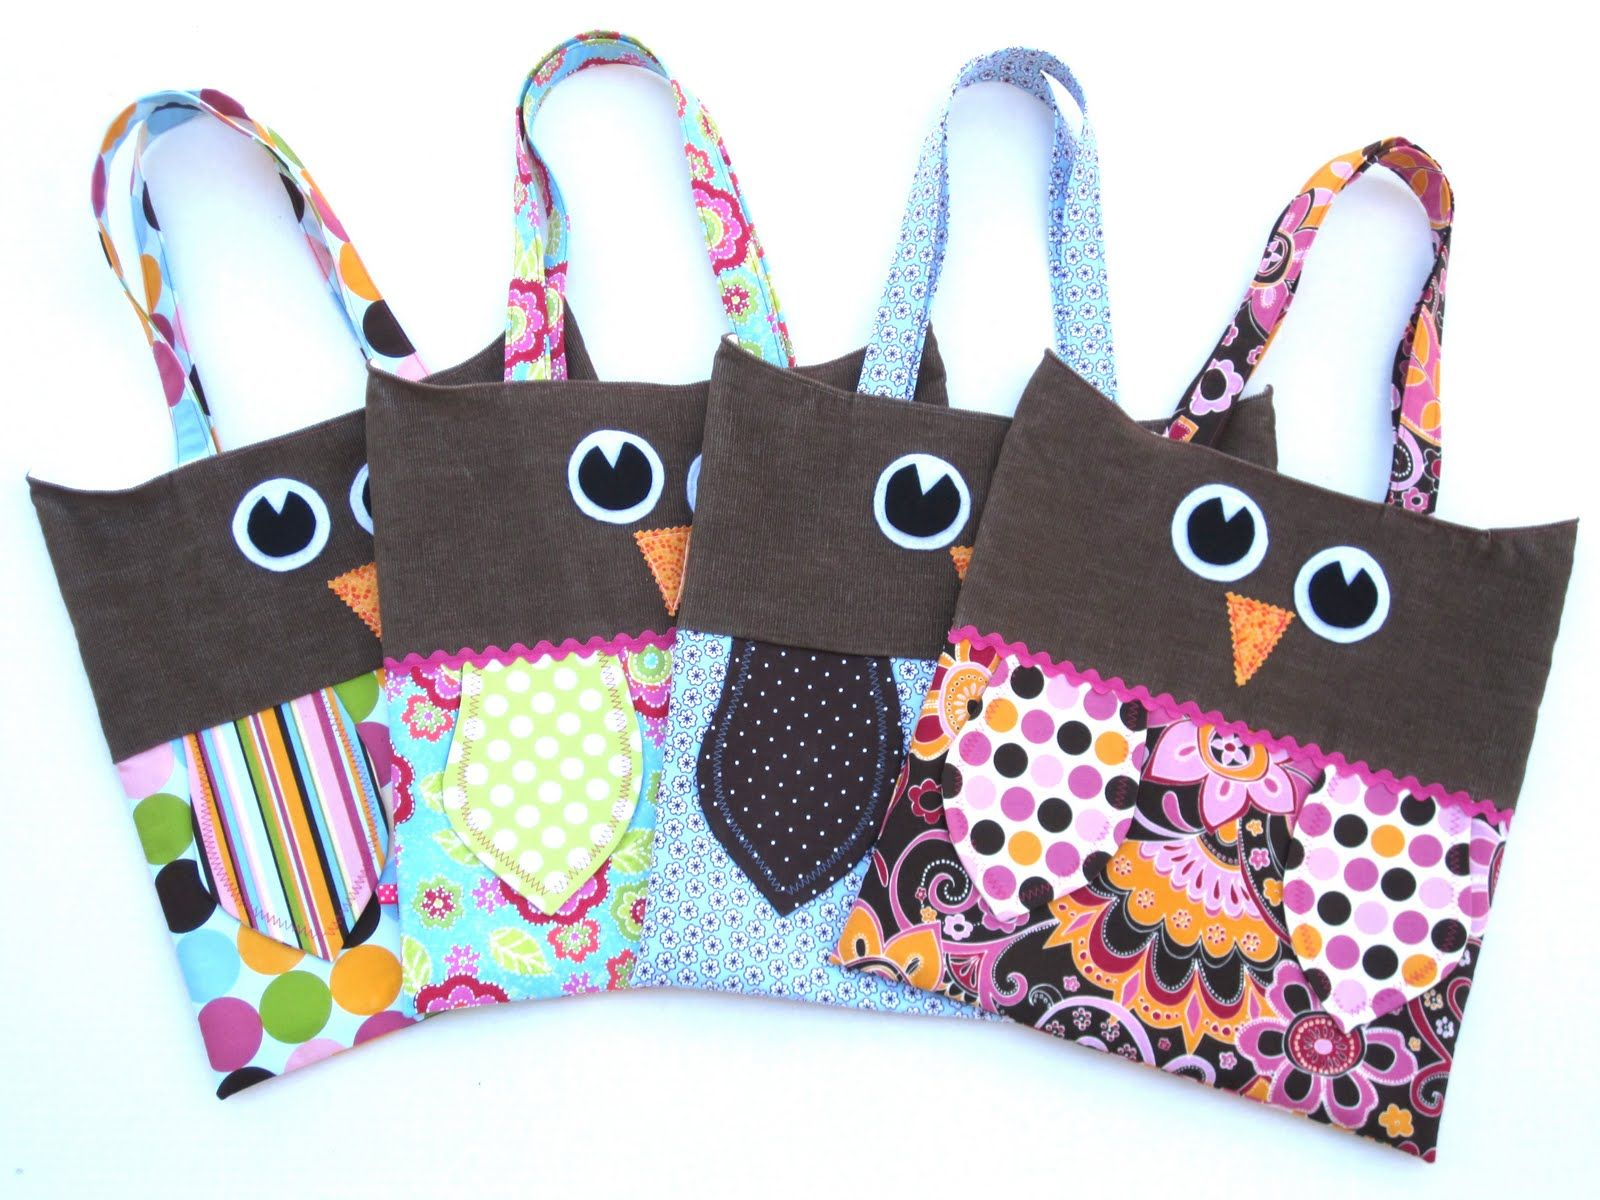 My owl tote stock  needed a breath of bright, colorful fabrics. The beloved Gracie  is back, but she had a little bit of a mishap wit...